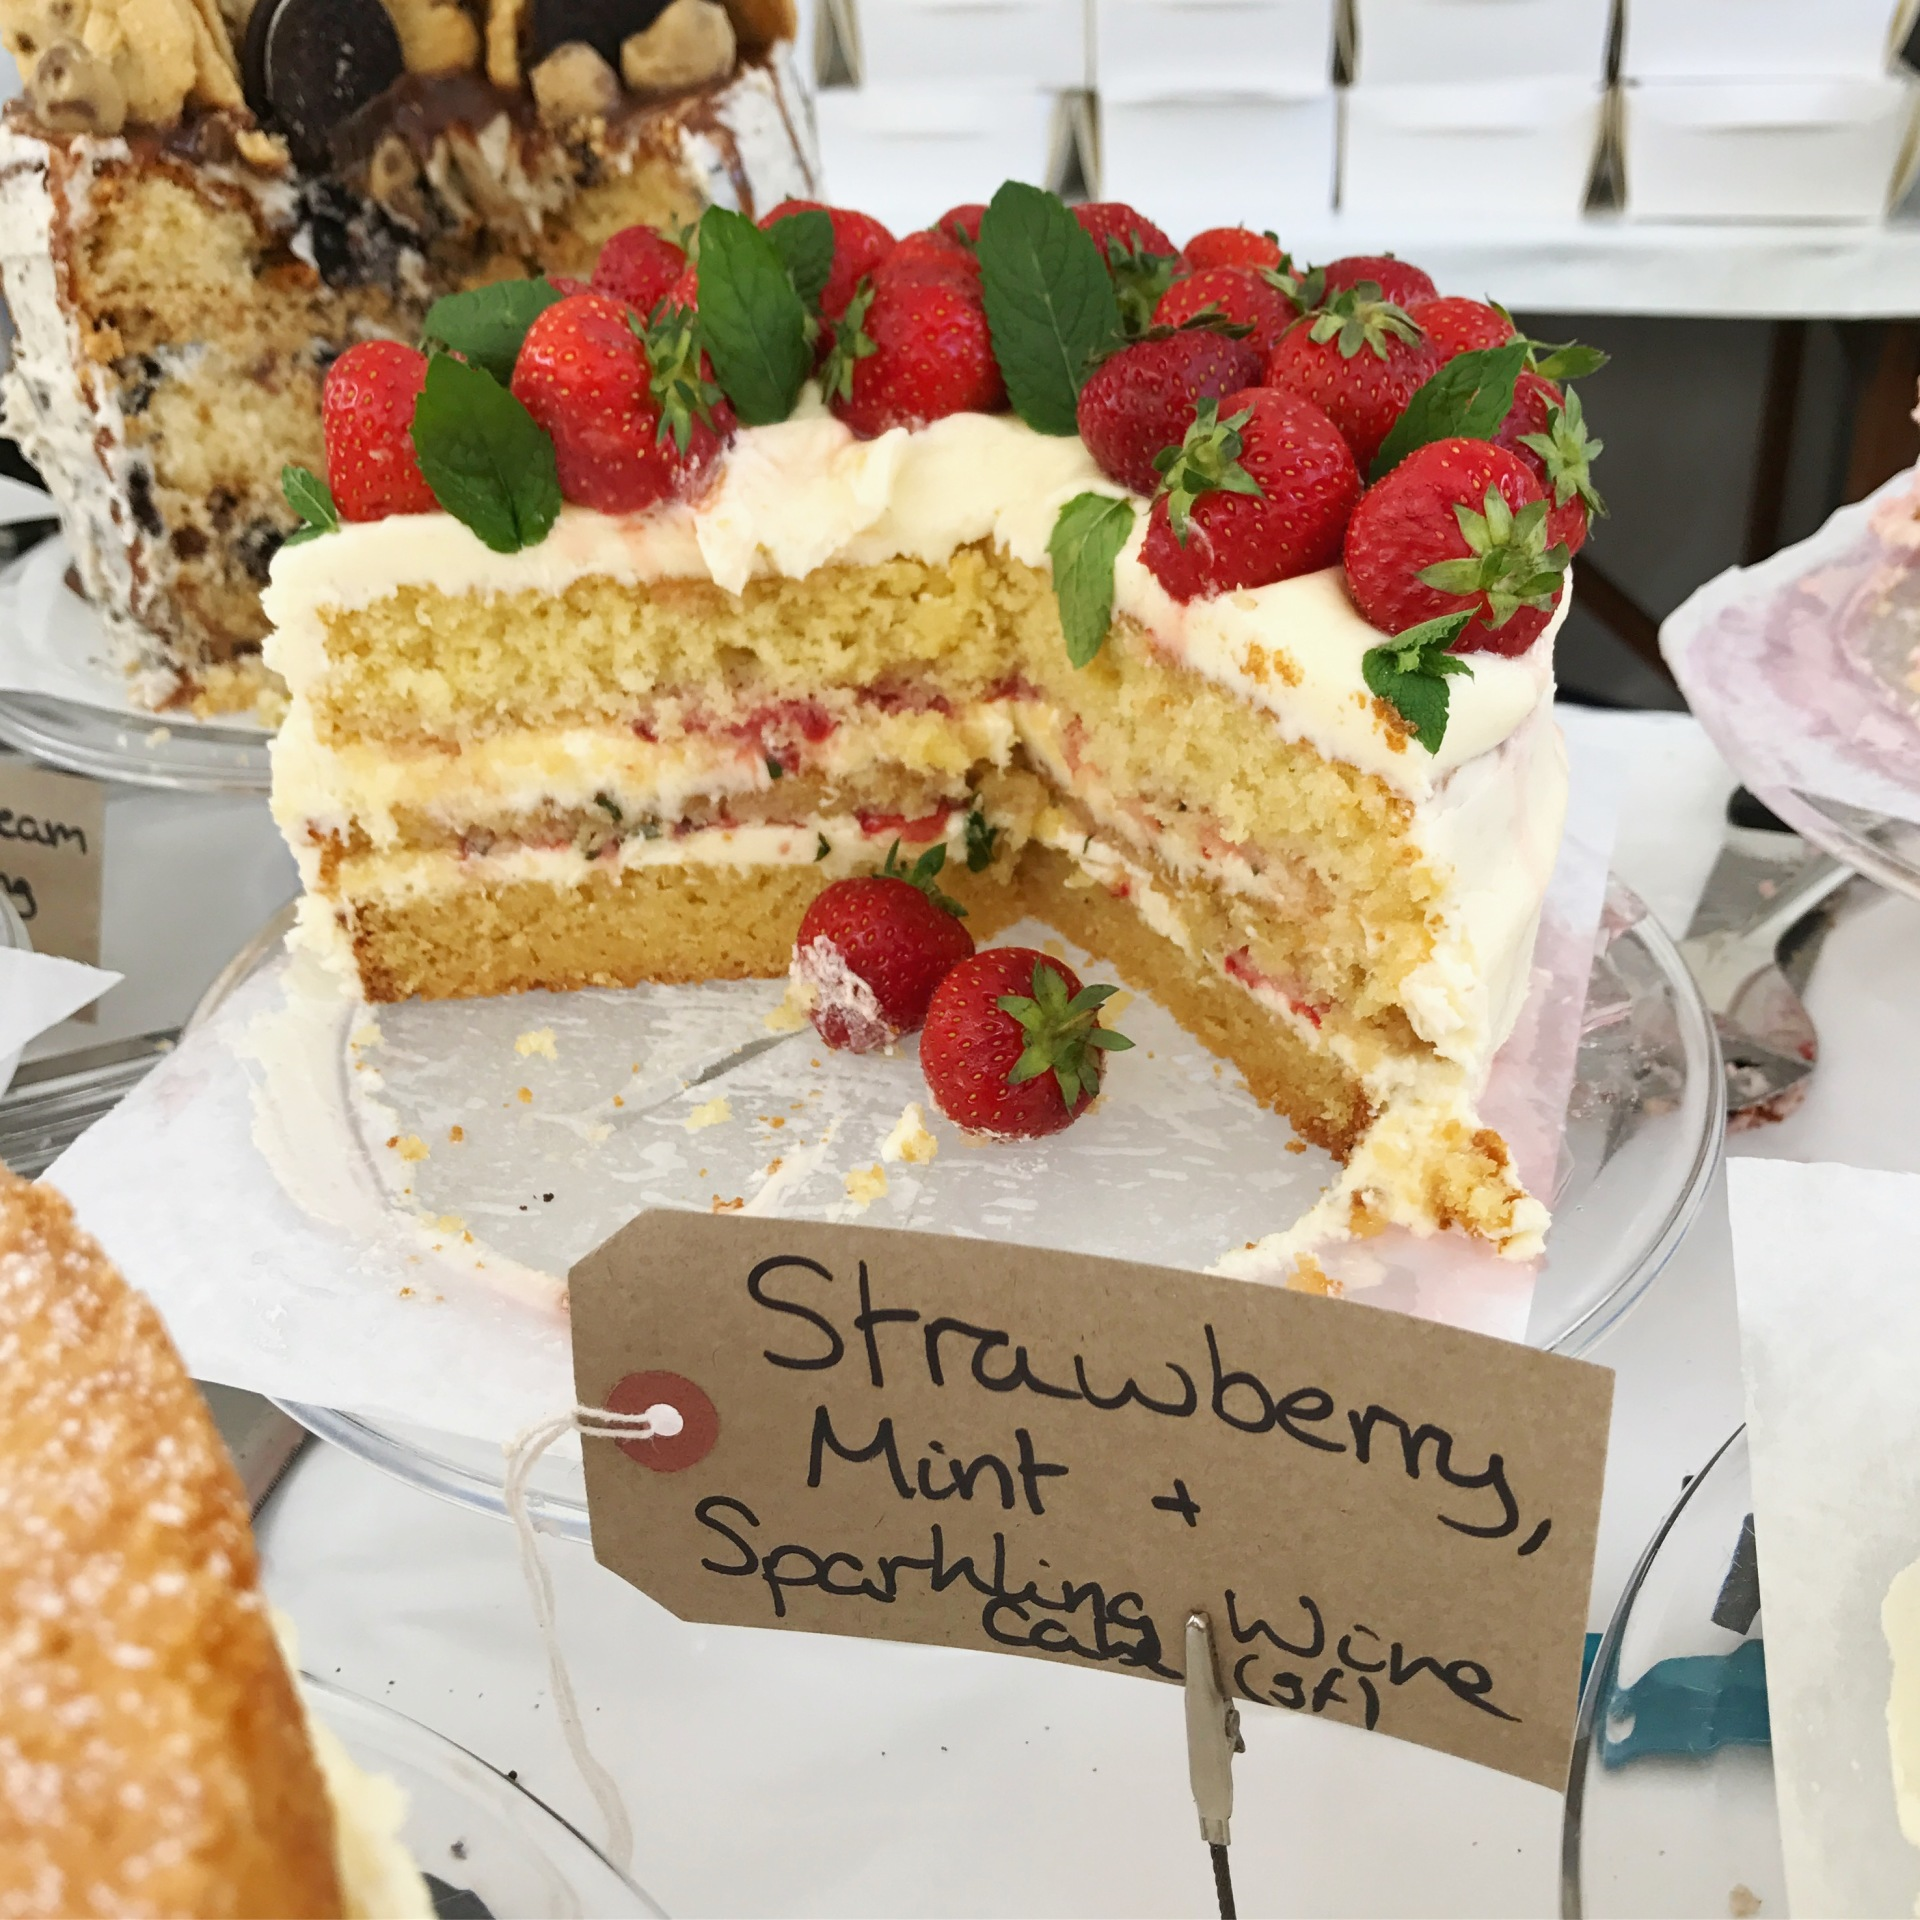 Strawberry, Mint and Sparkling Wine Cake